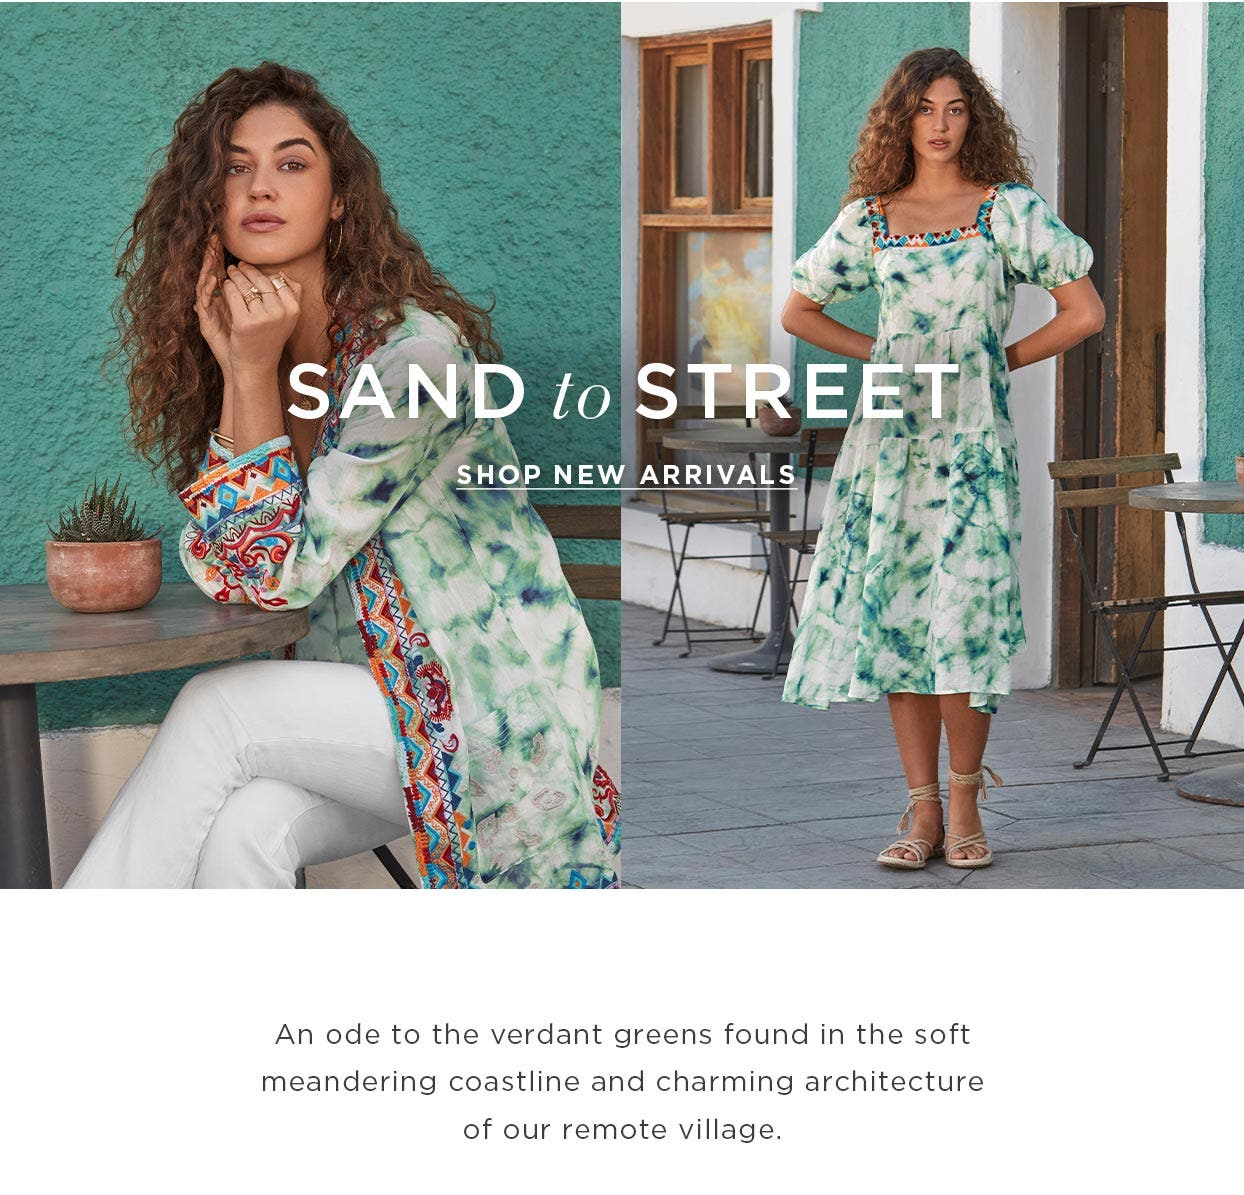 Sand to the Street – Shop New Arrivals. An ode to the verdant greens found in the soft meandering coastline and charming architecture of our remote village.